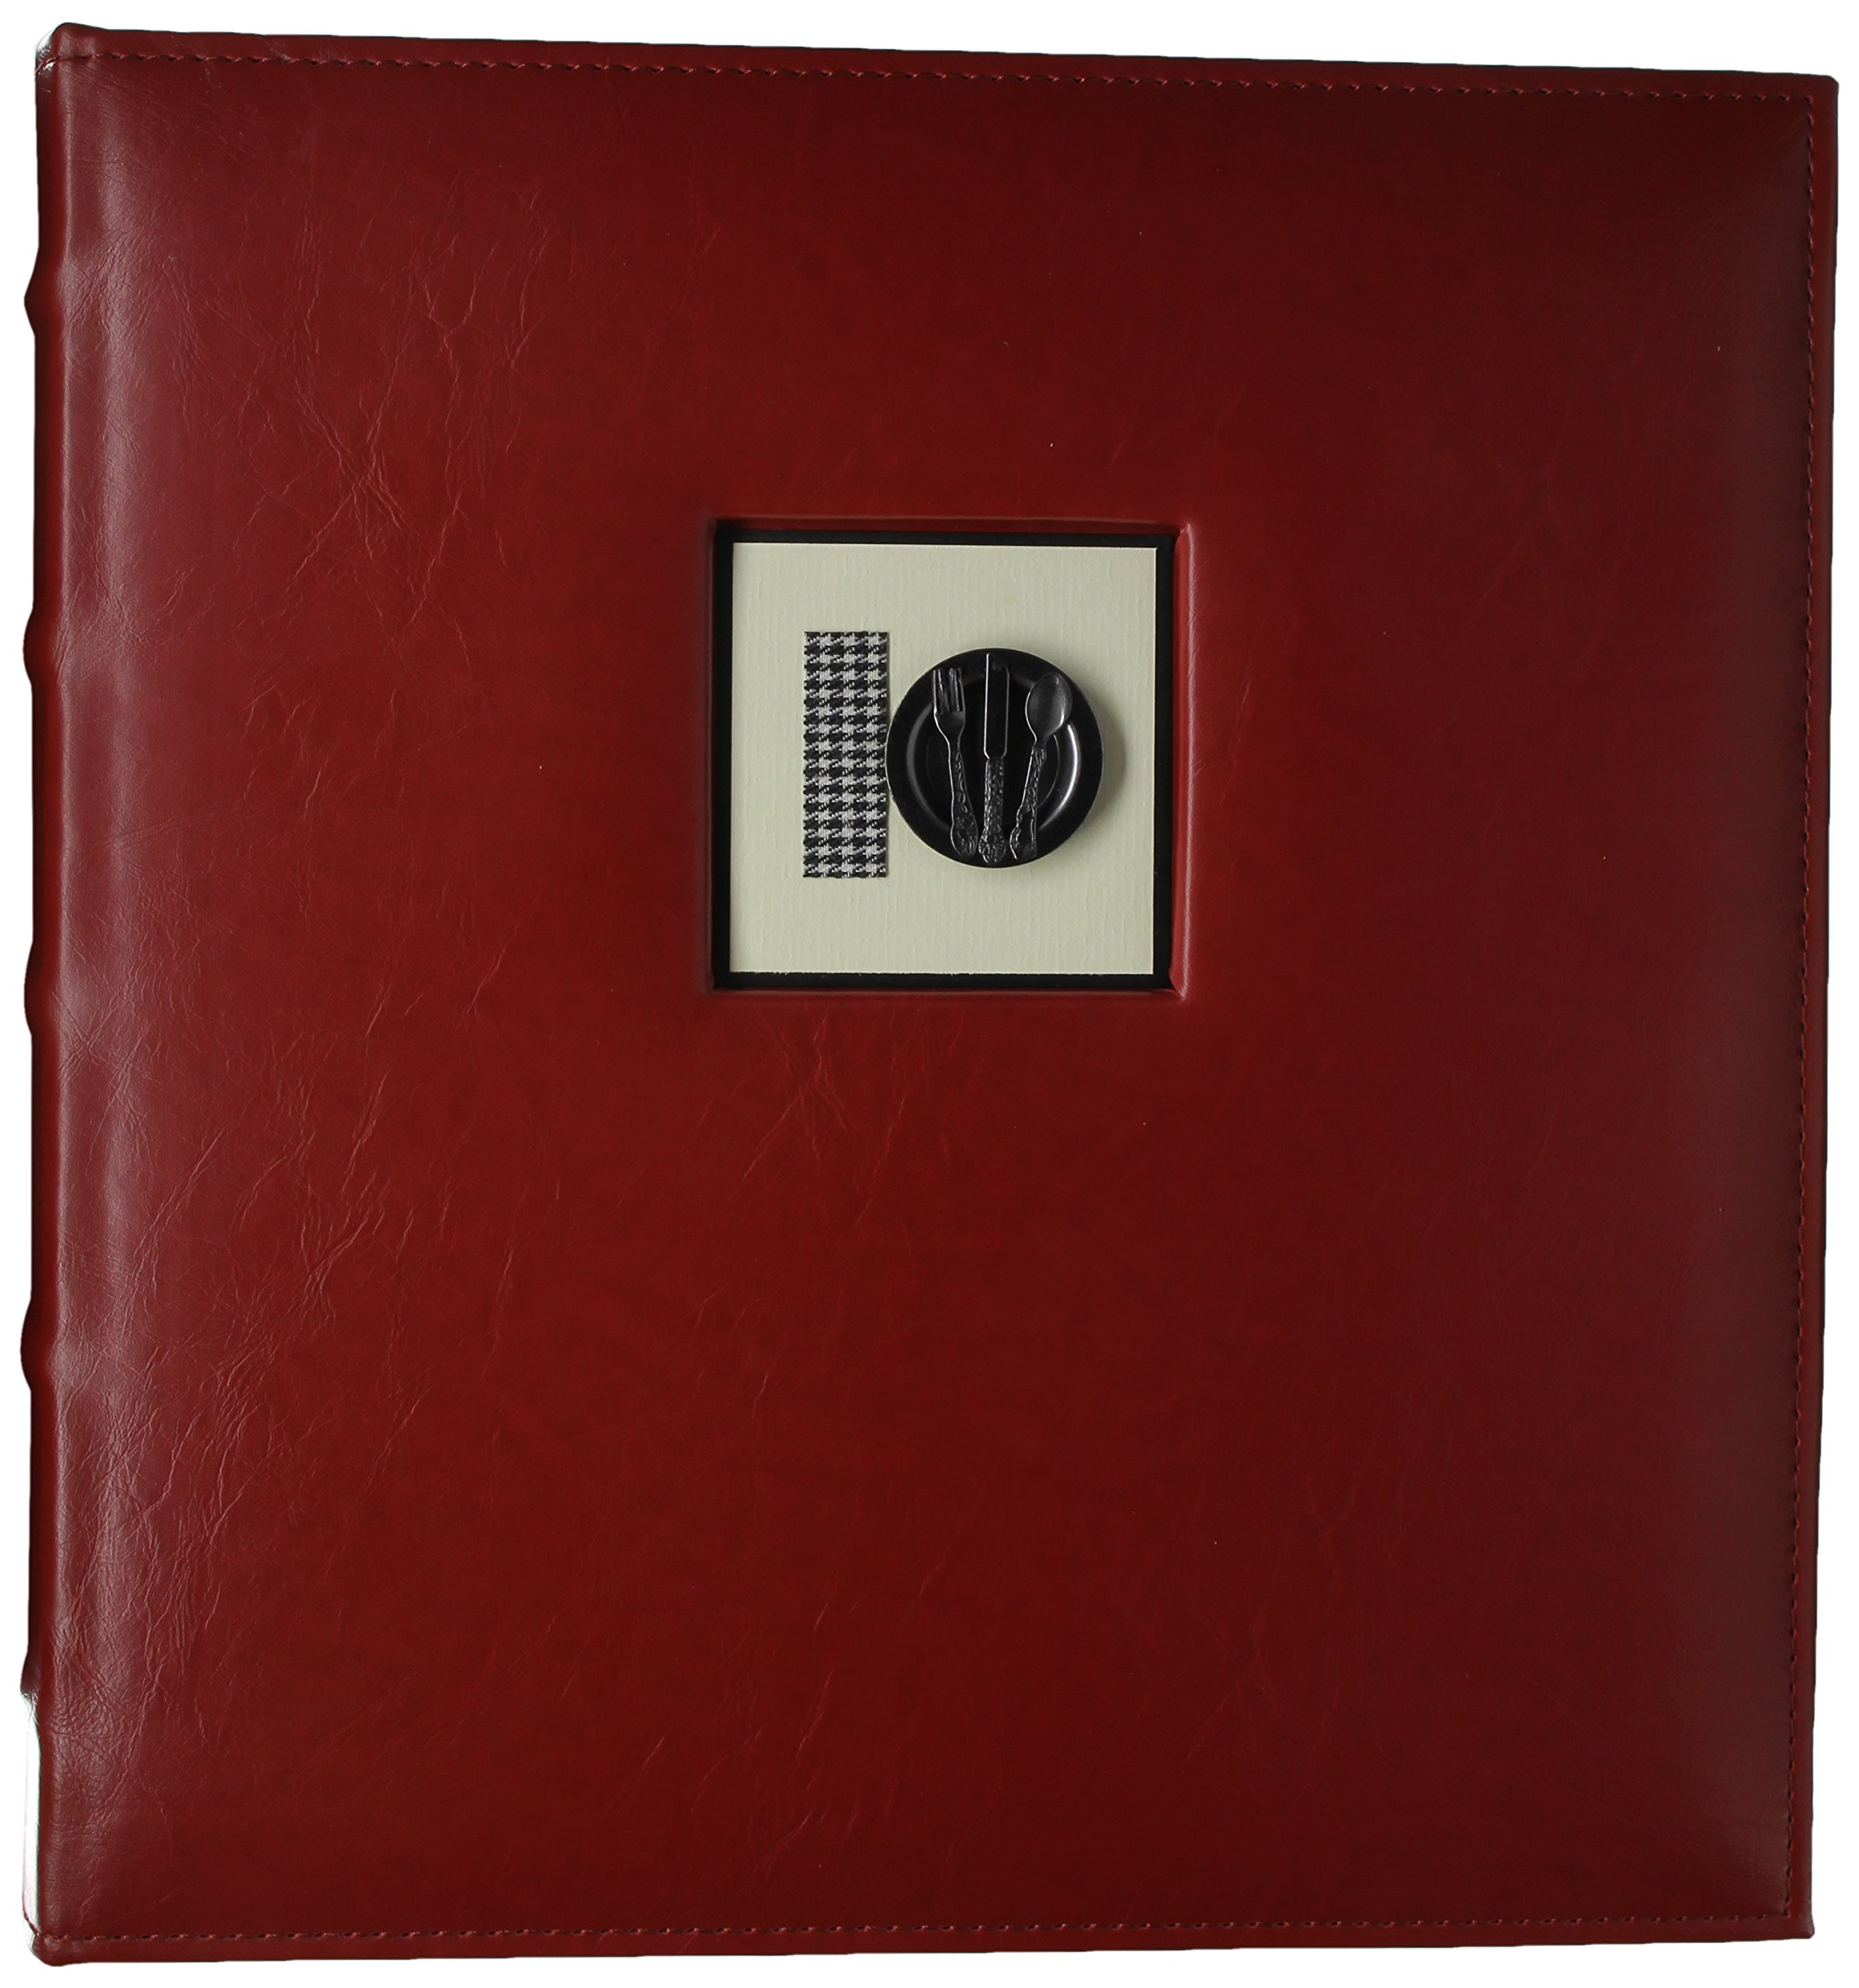 CR Gibson Bon Appetit Deluxe Kitchen Binder by C.R. Gibson